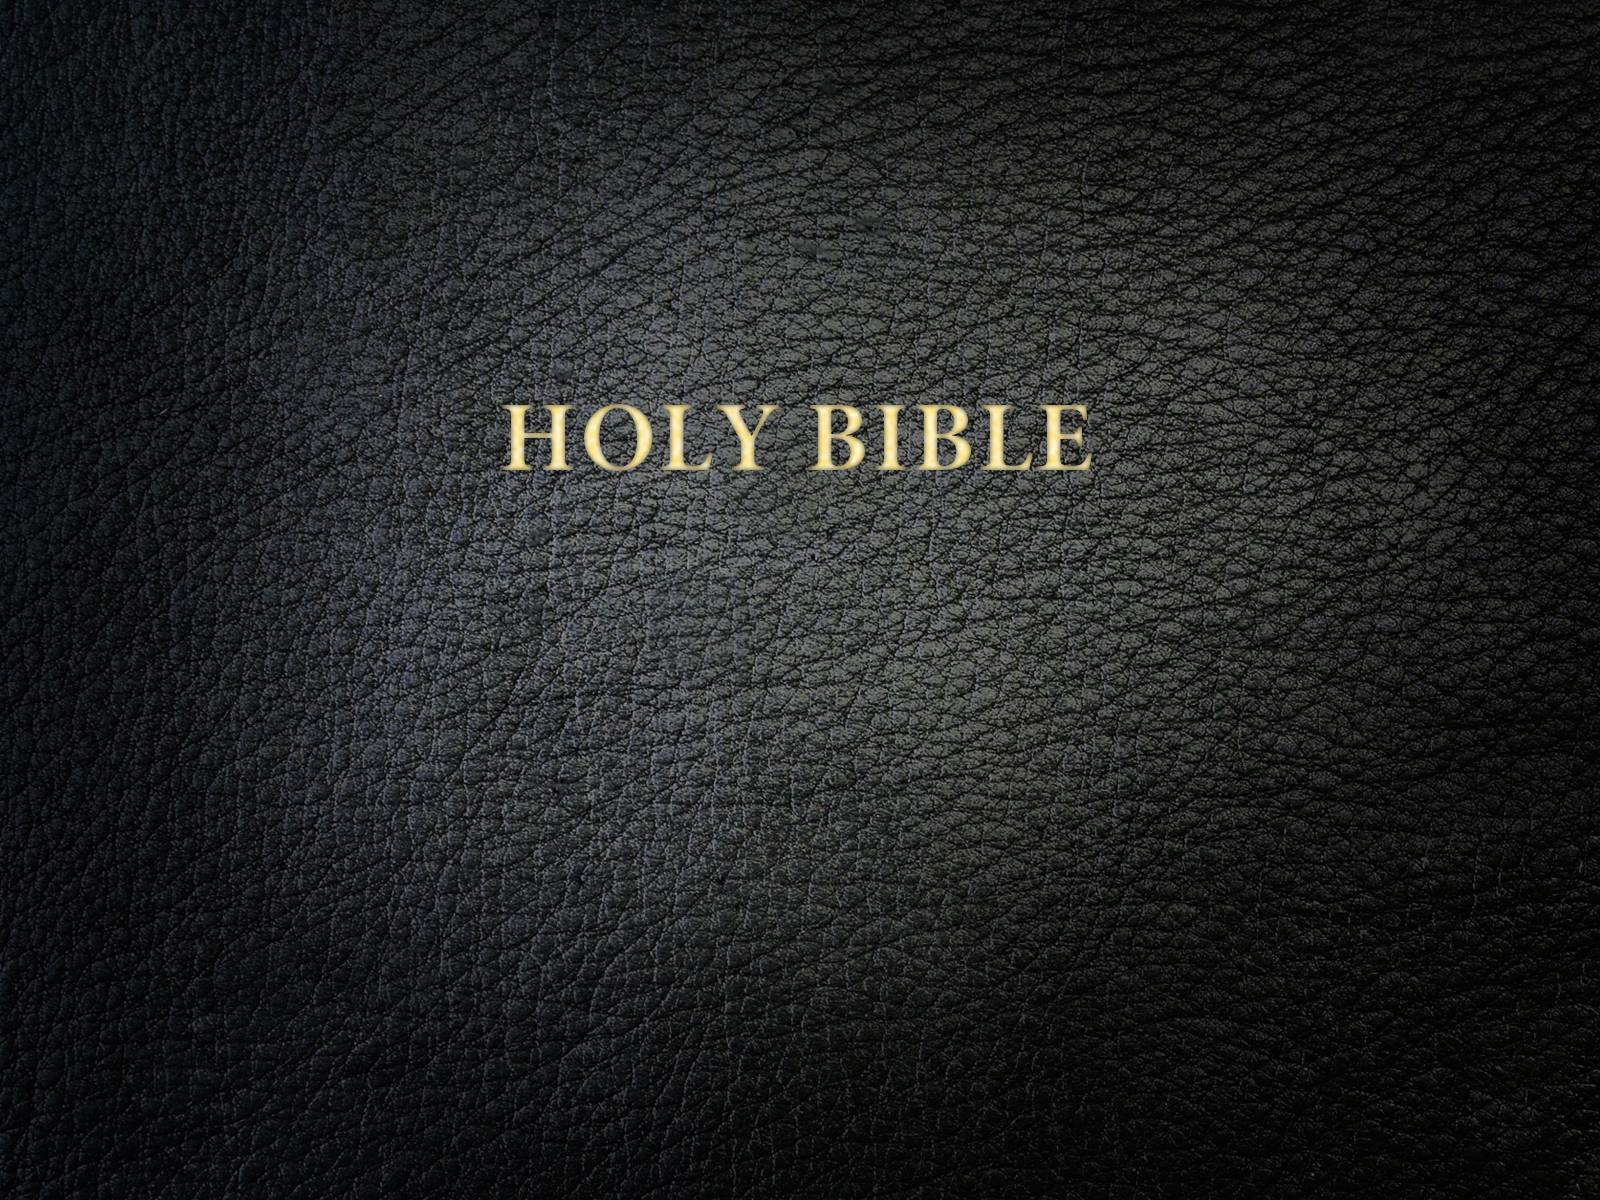 Holy Bible Wallpapers - Wallpaper Cave